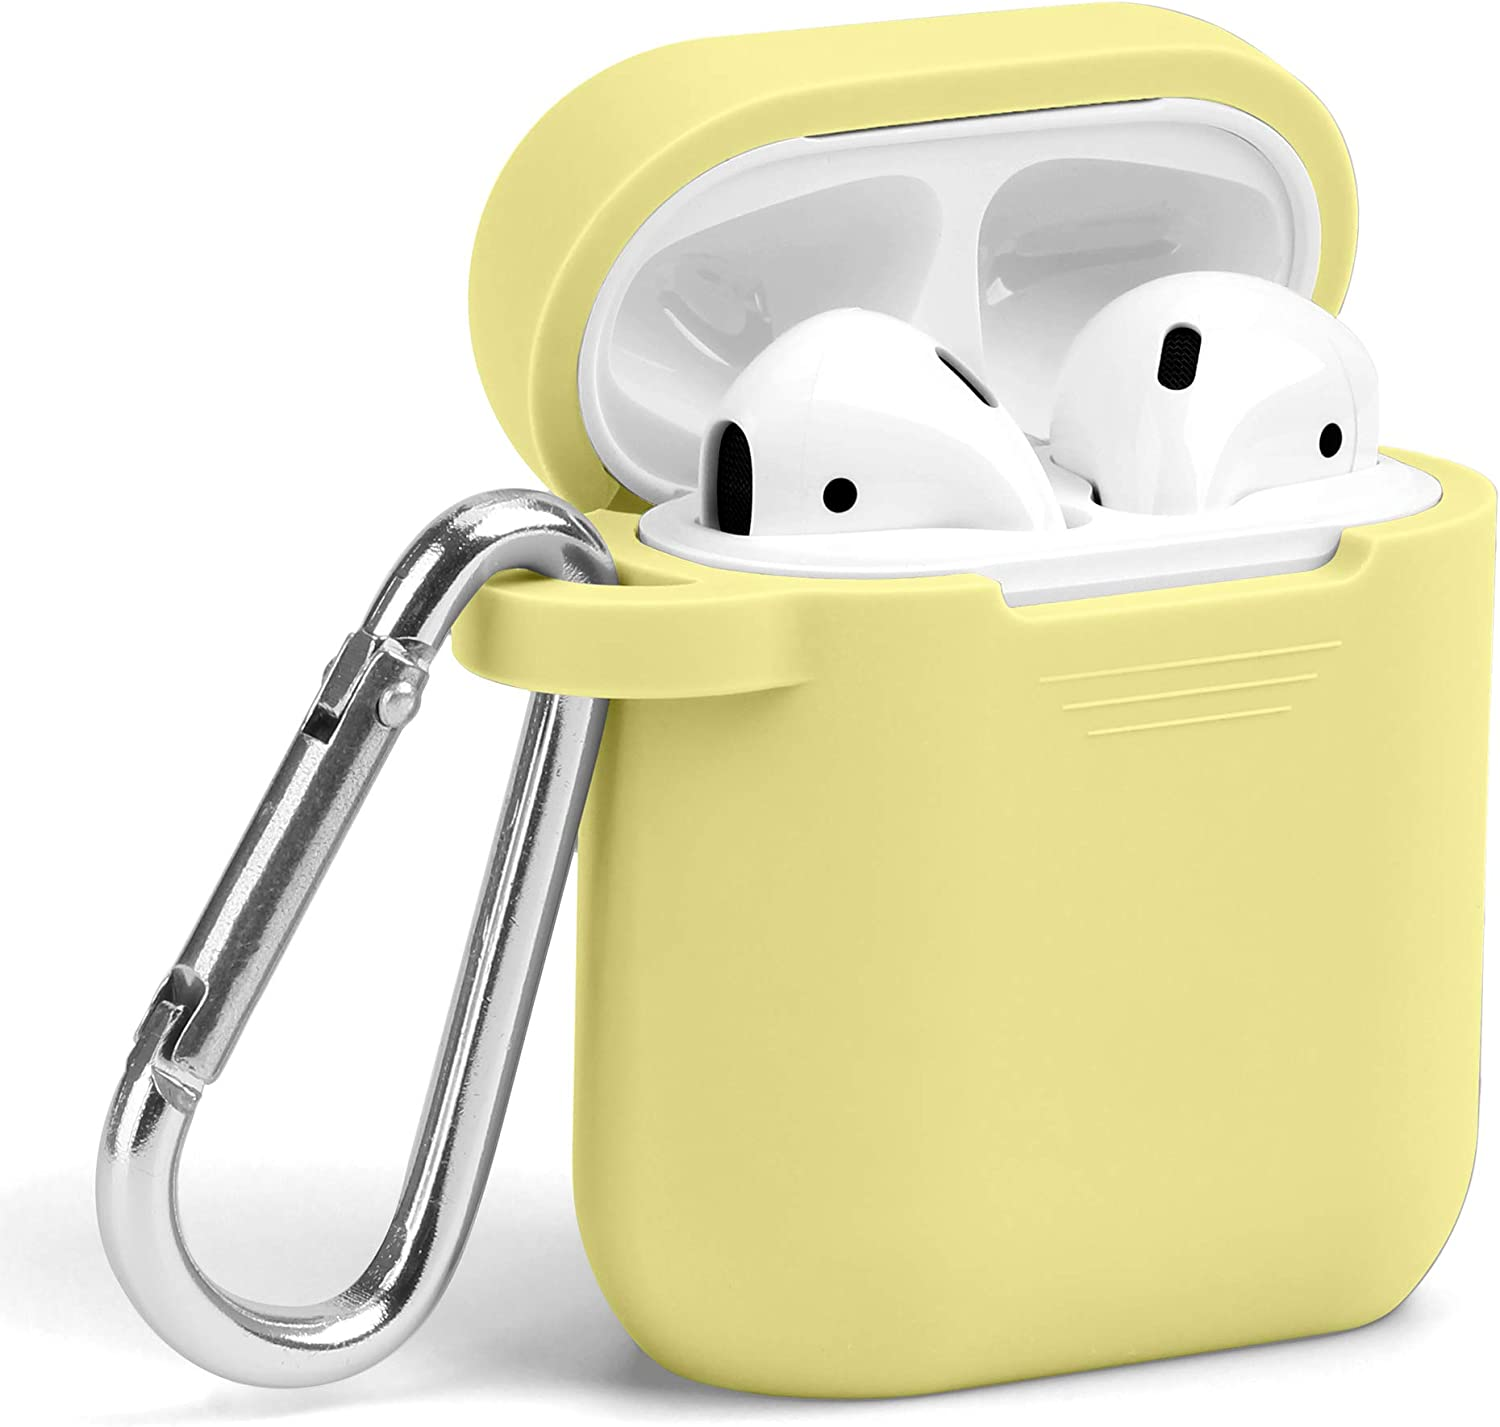 Airpods Case, GMYLE Silicone Protective Shockproof Wireless Charging Airpods Earbuds Case Cover Skin with Keychain kit Set Compatible for Apple AirPods 2 & 1 – Light Yellow